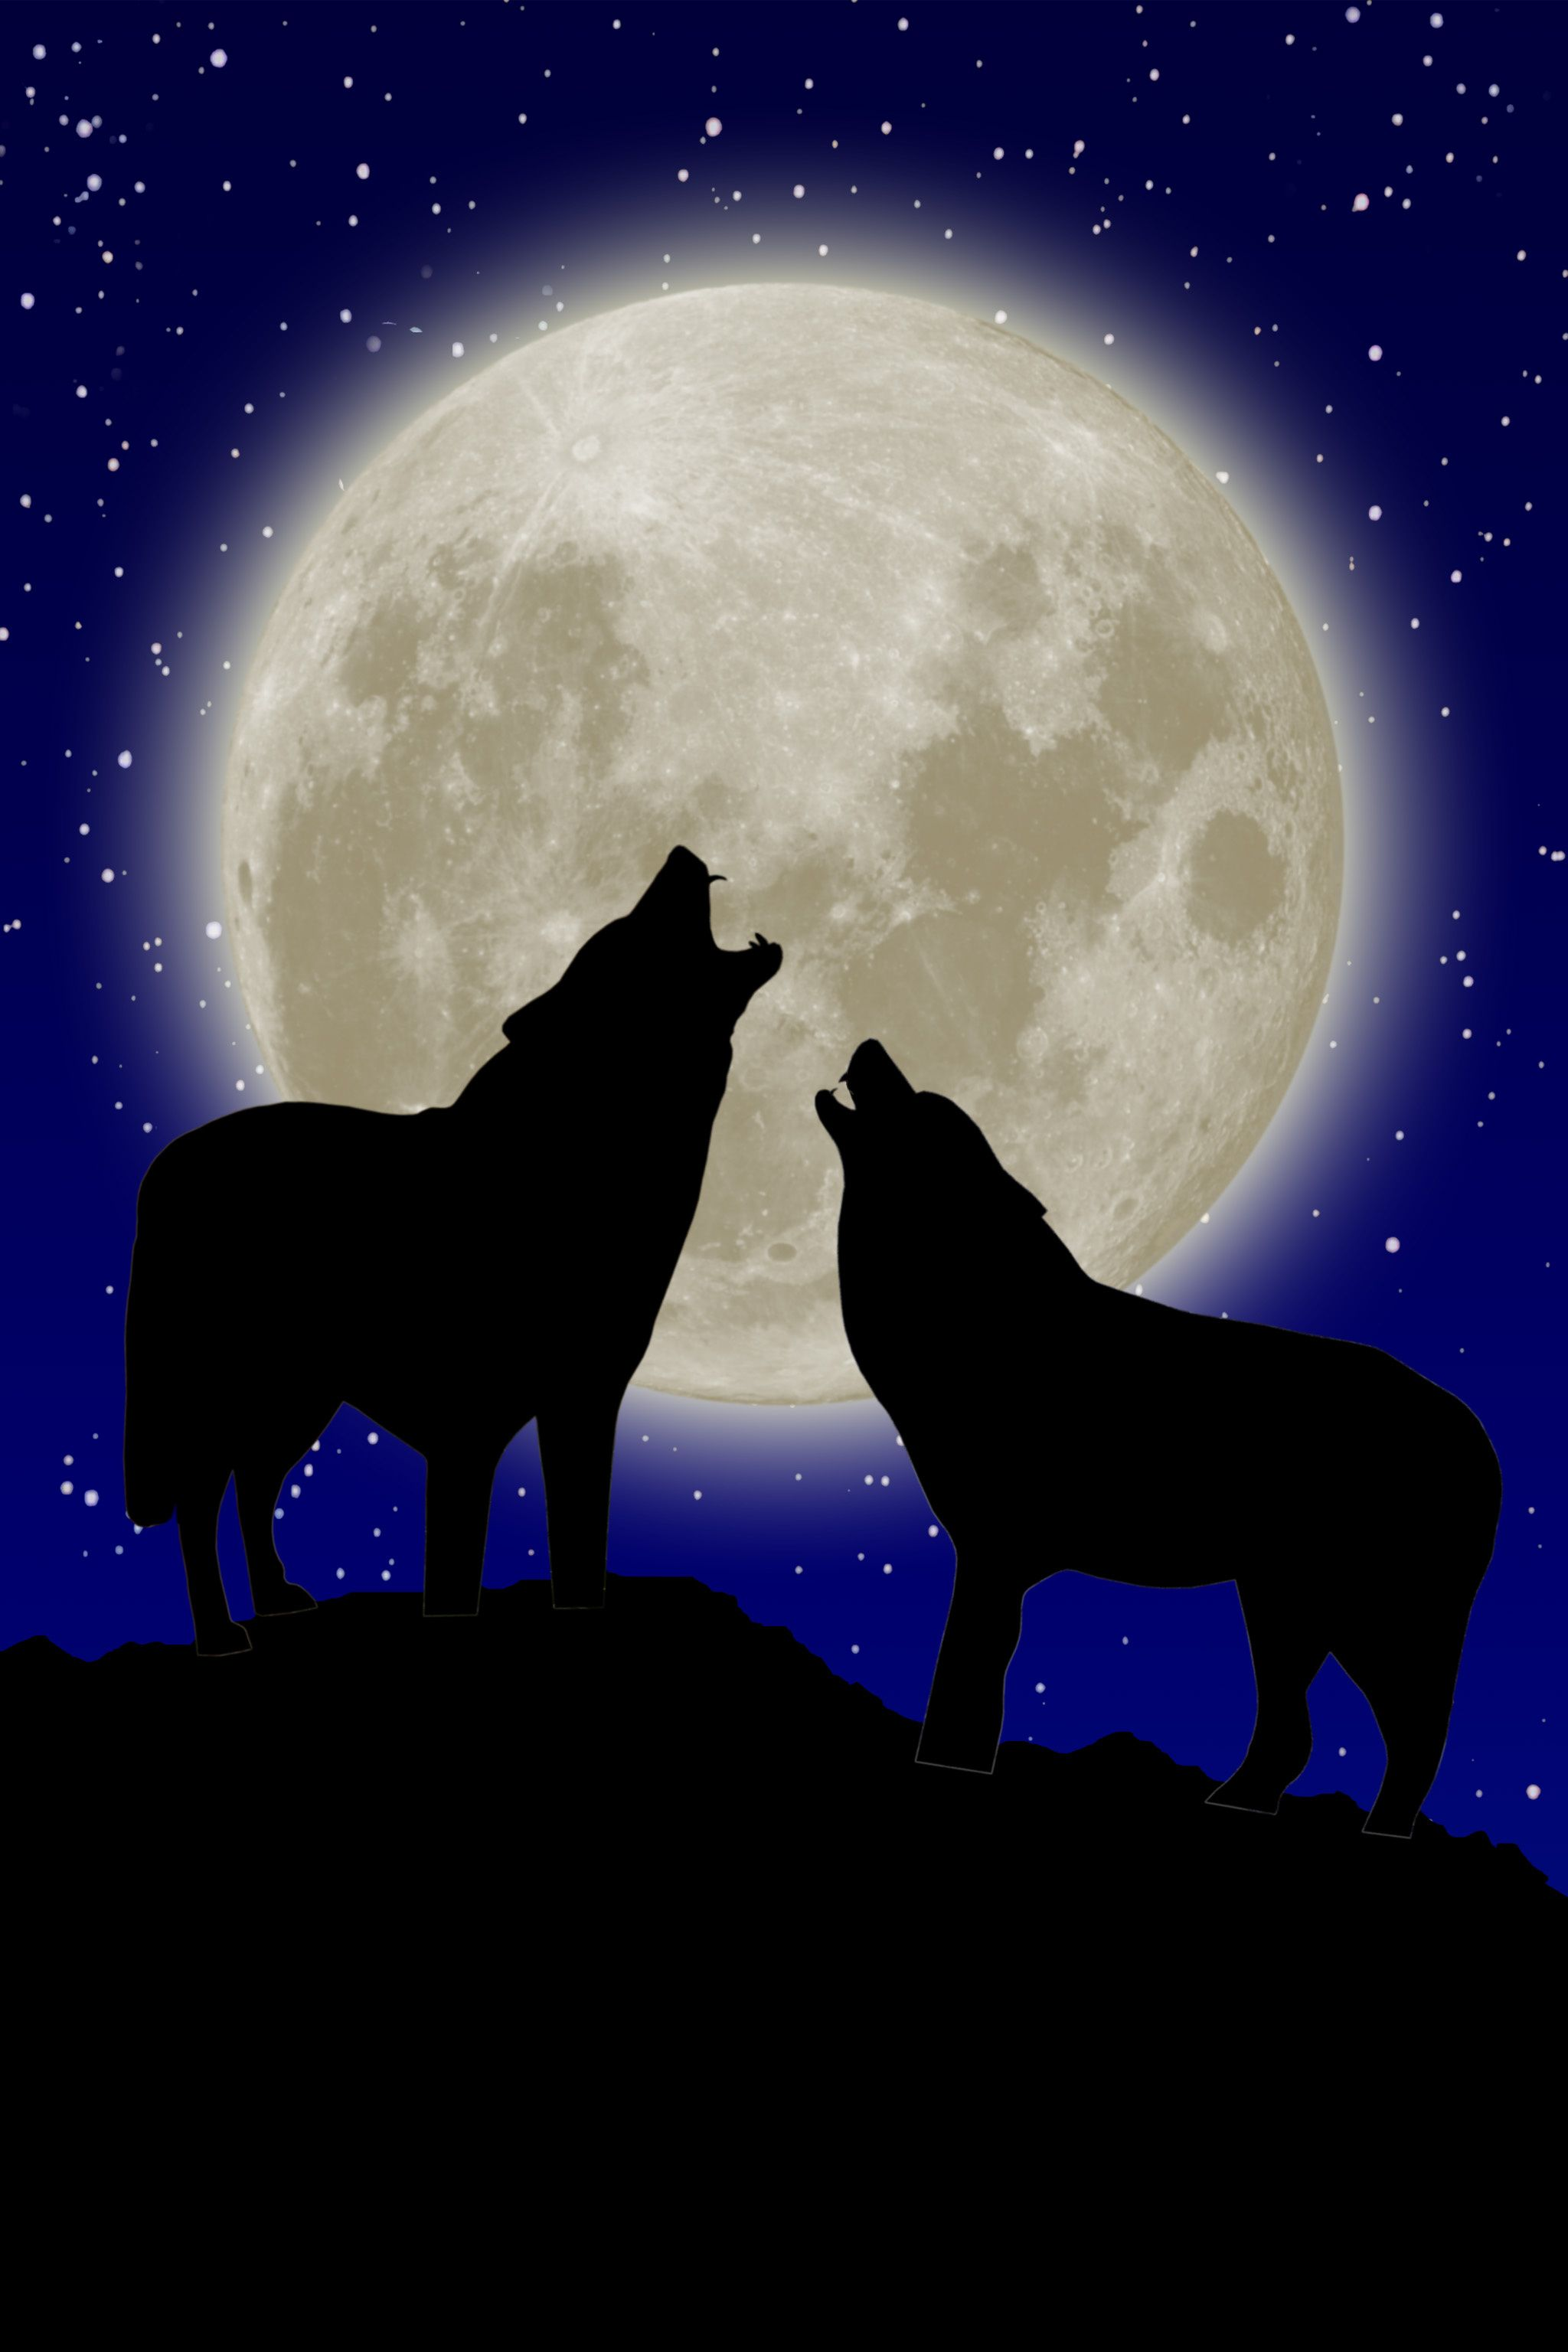 2 Wolves Howling At The Moon Together Wolves Howling At The Moon Wolf Howling At Moon Wolf Silhouette